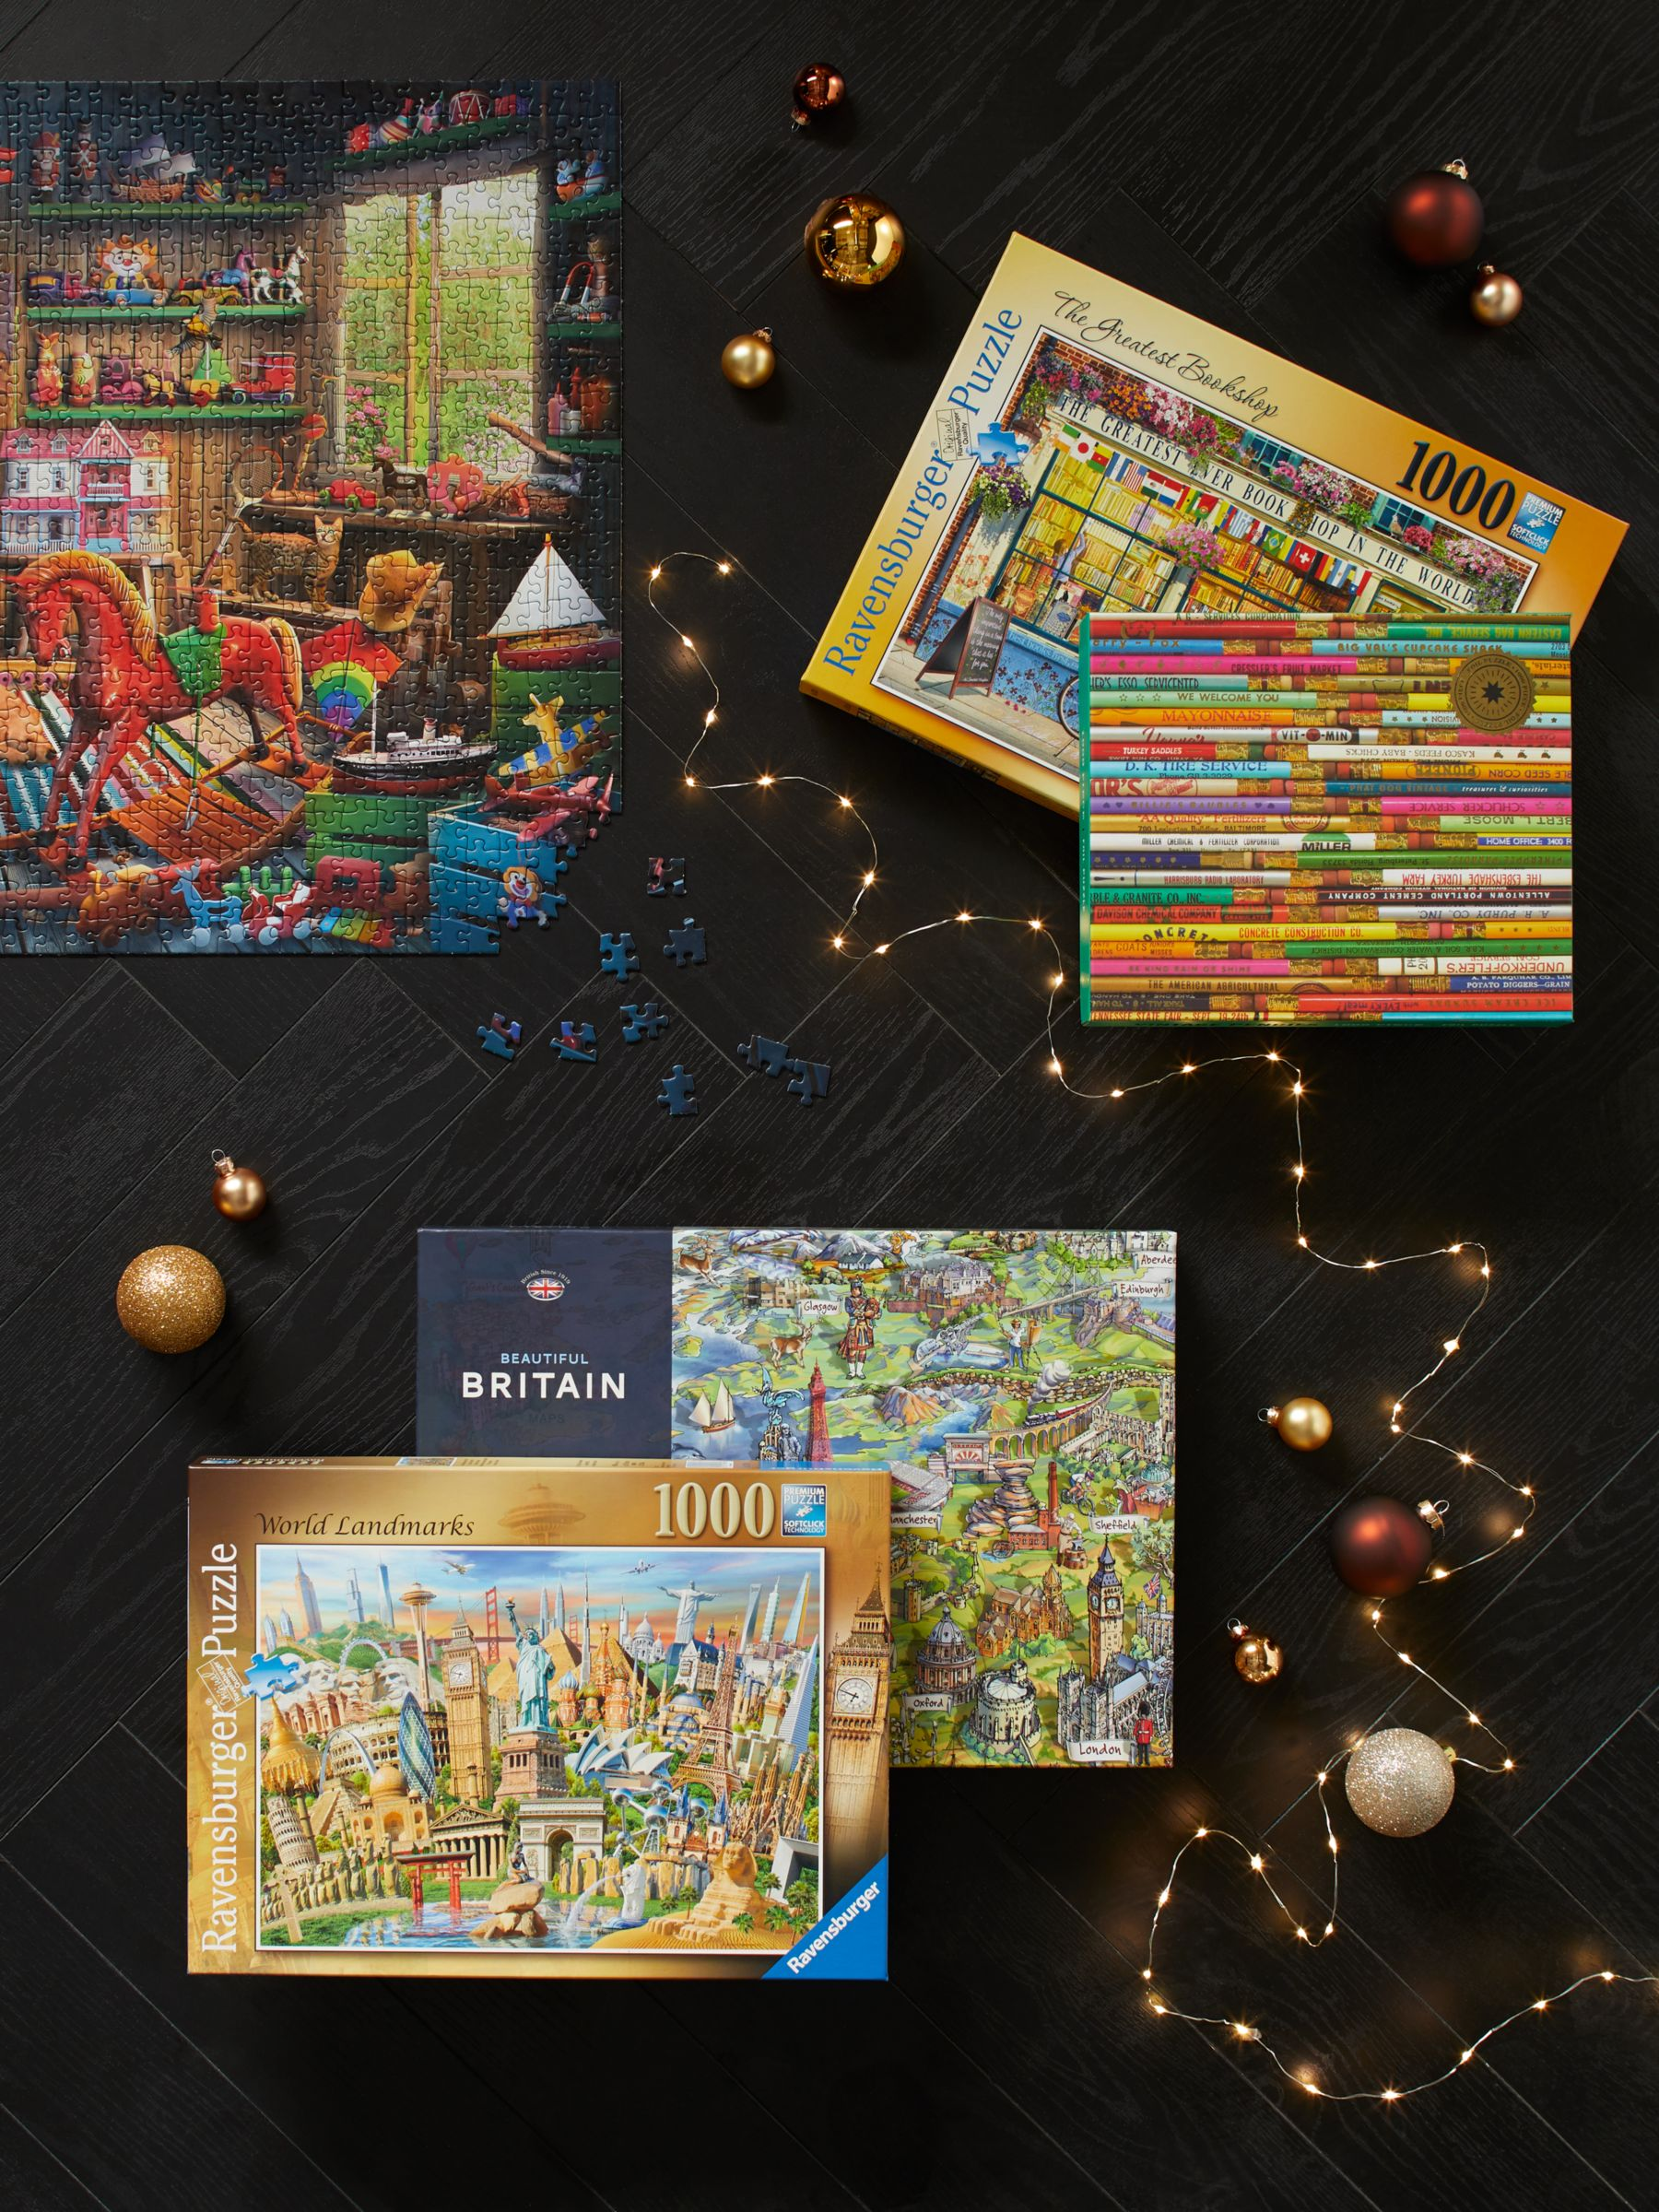 - Gibsons Beautiful Britain UK Map Jigsaw Puzzle, 1000 Pieces At